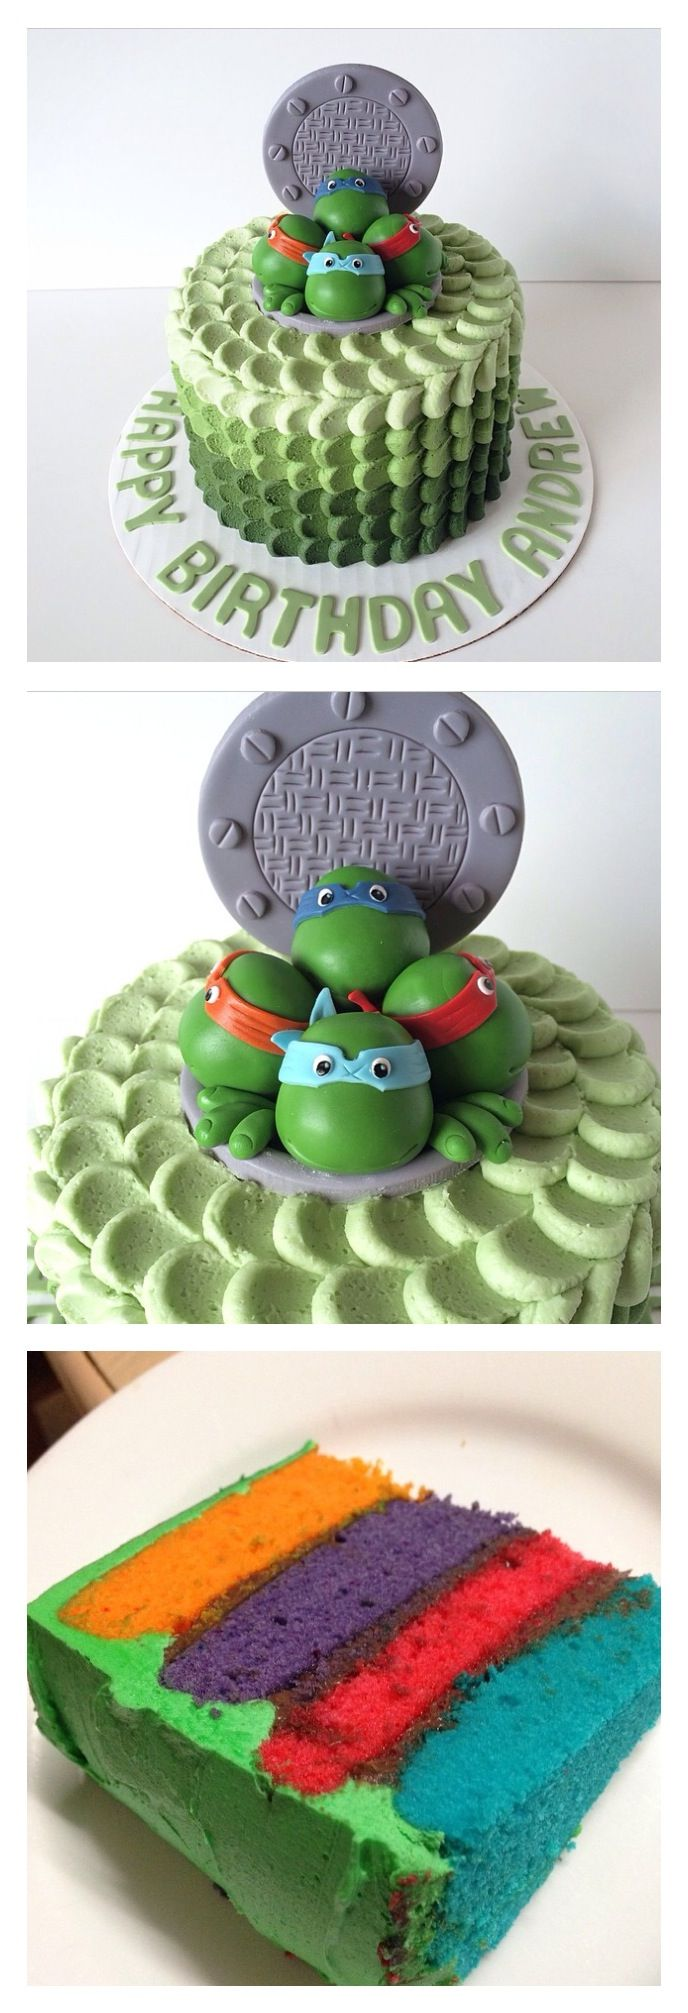 Marvelous Birthday Cakes Tmnt Ninja Turtle Cake Idea Yesbirthday Home Birthday Cards Printable Riciscafe Filternl